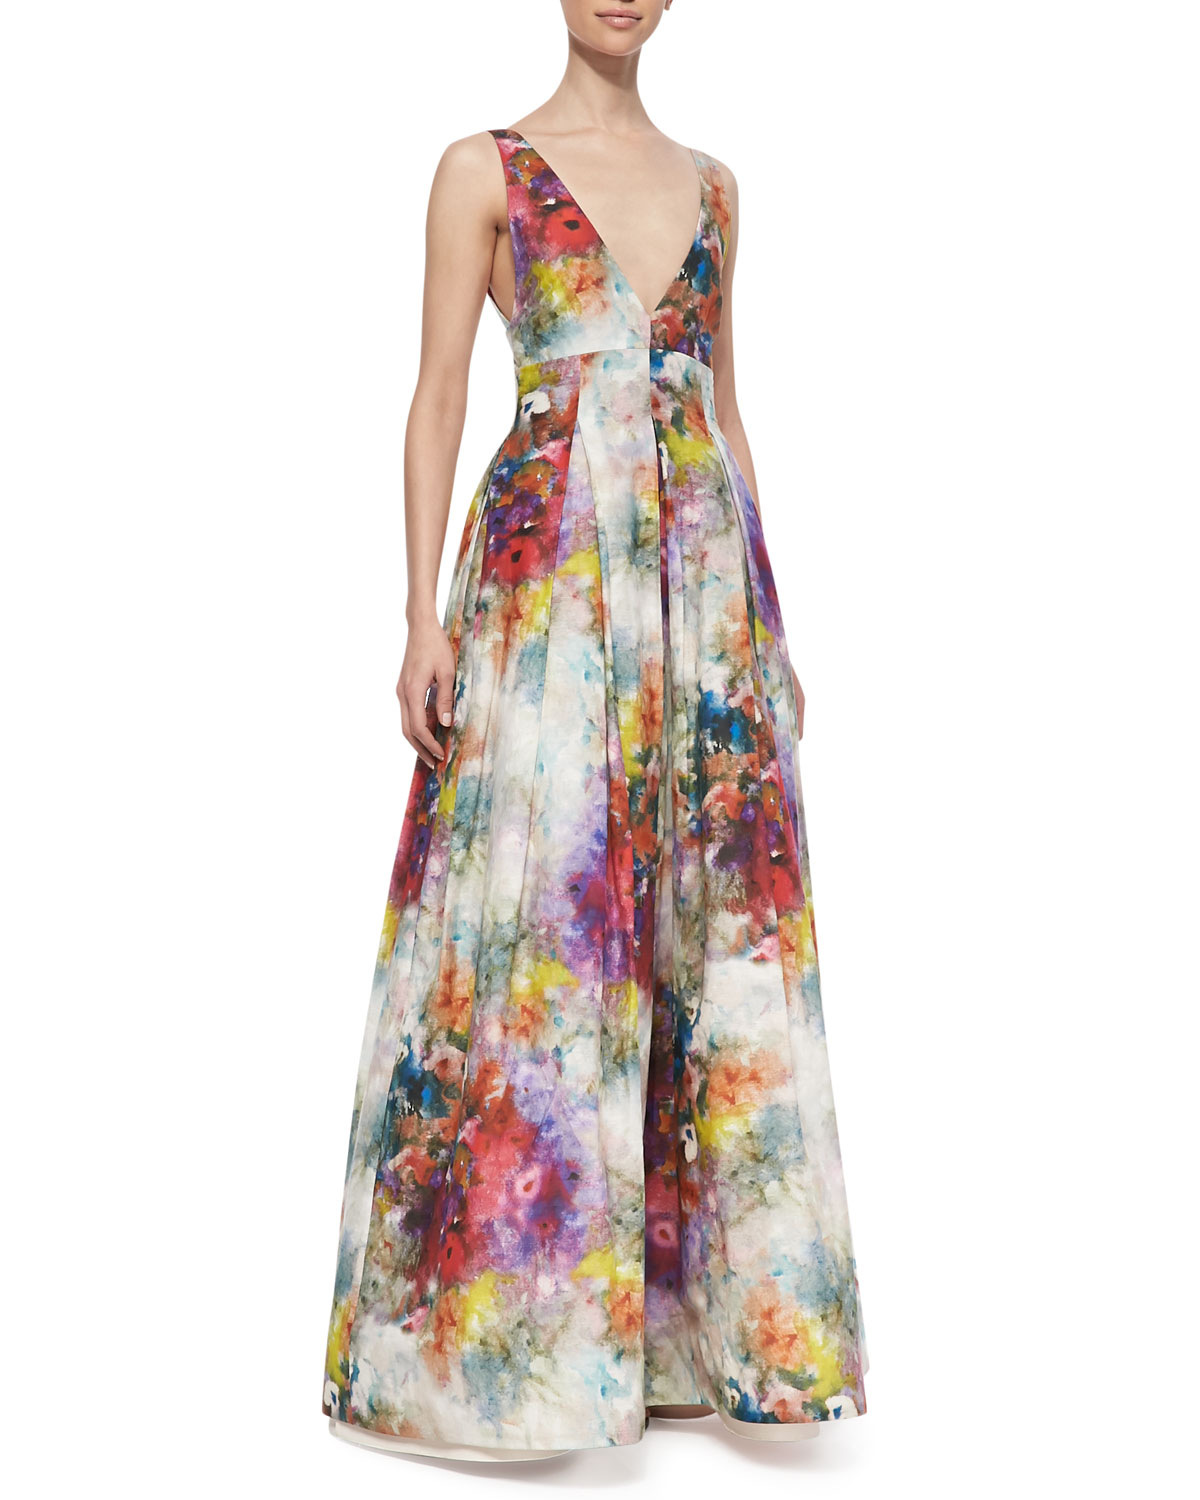 Lyst - Alice + Olivia Chantal Floral-Print Sleeveless Gown